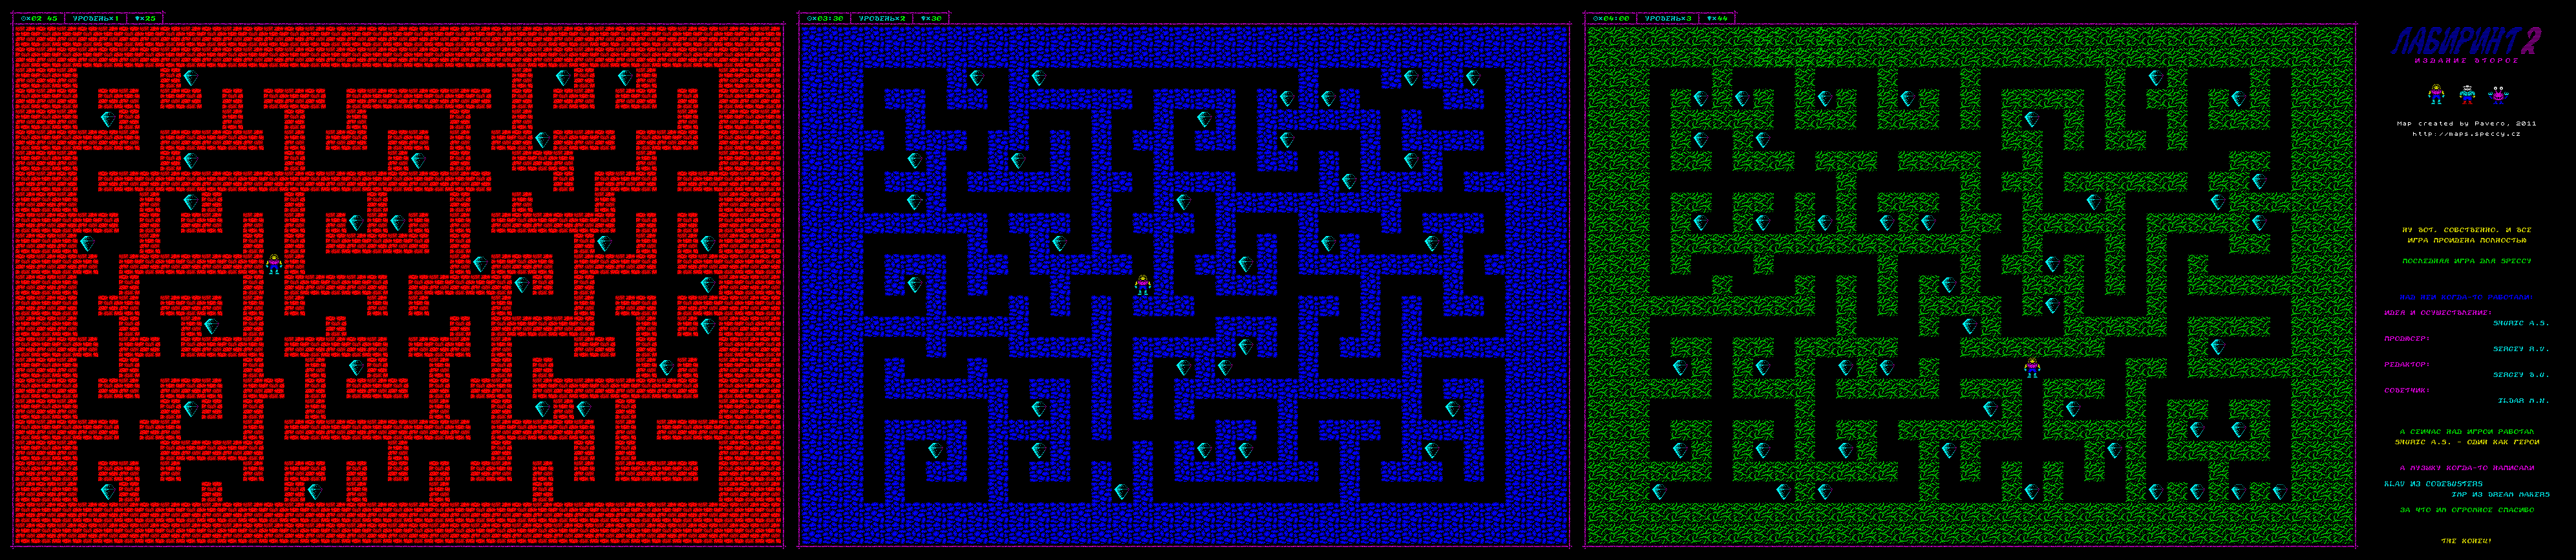 Labyrinth 2 - The Map